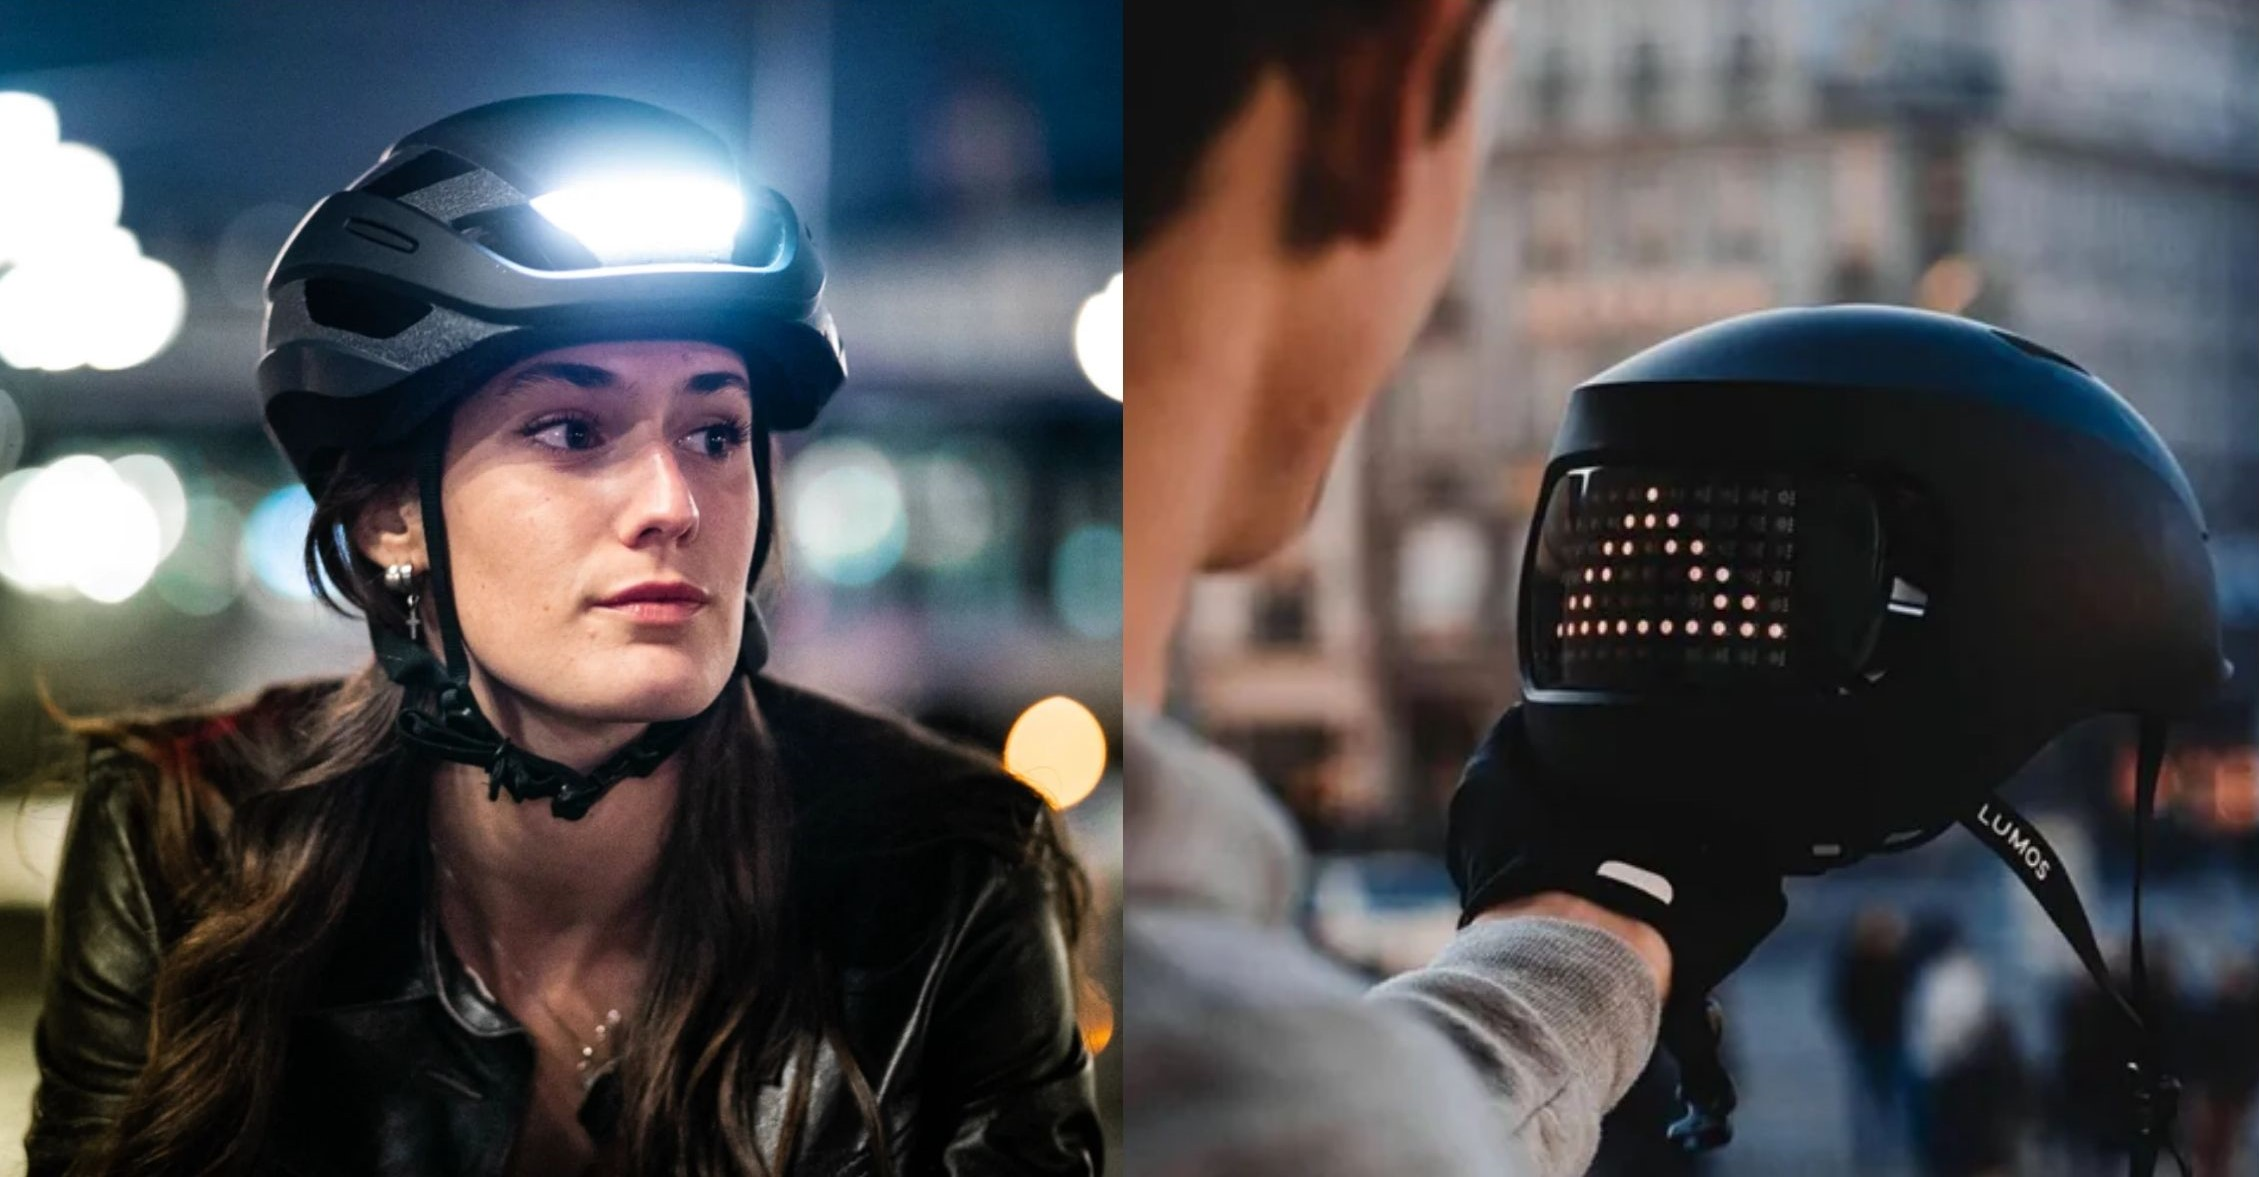 Malaysian-based Startup Sells Smart Helmets Worldwide In Apple Stores